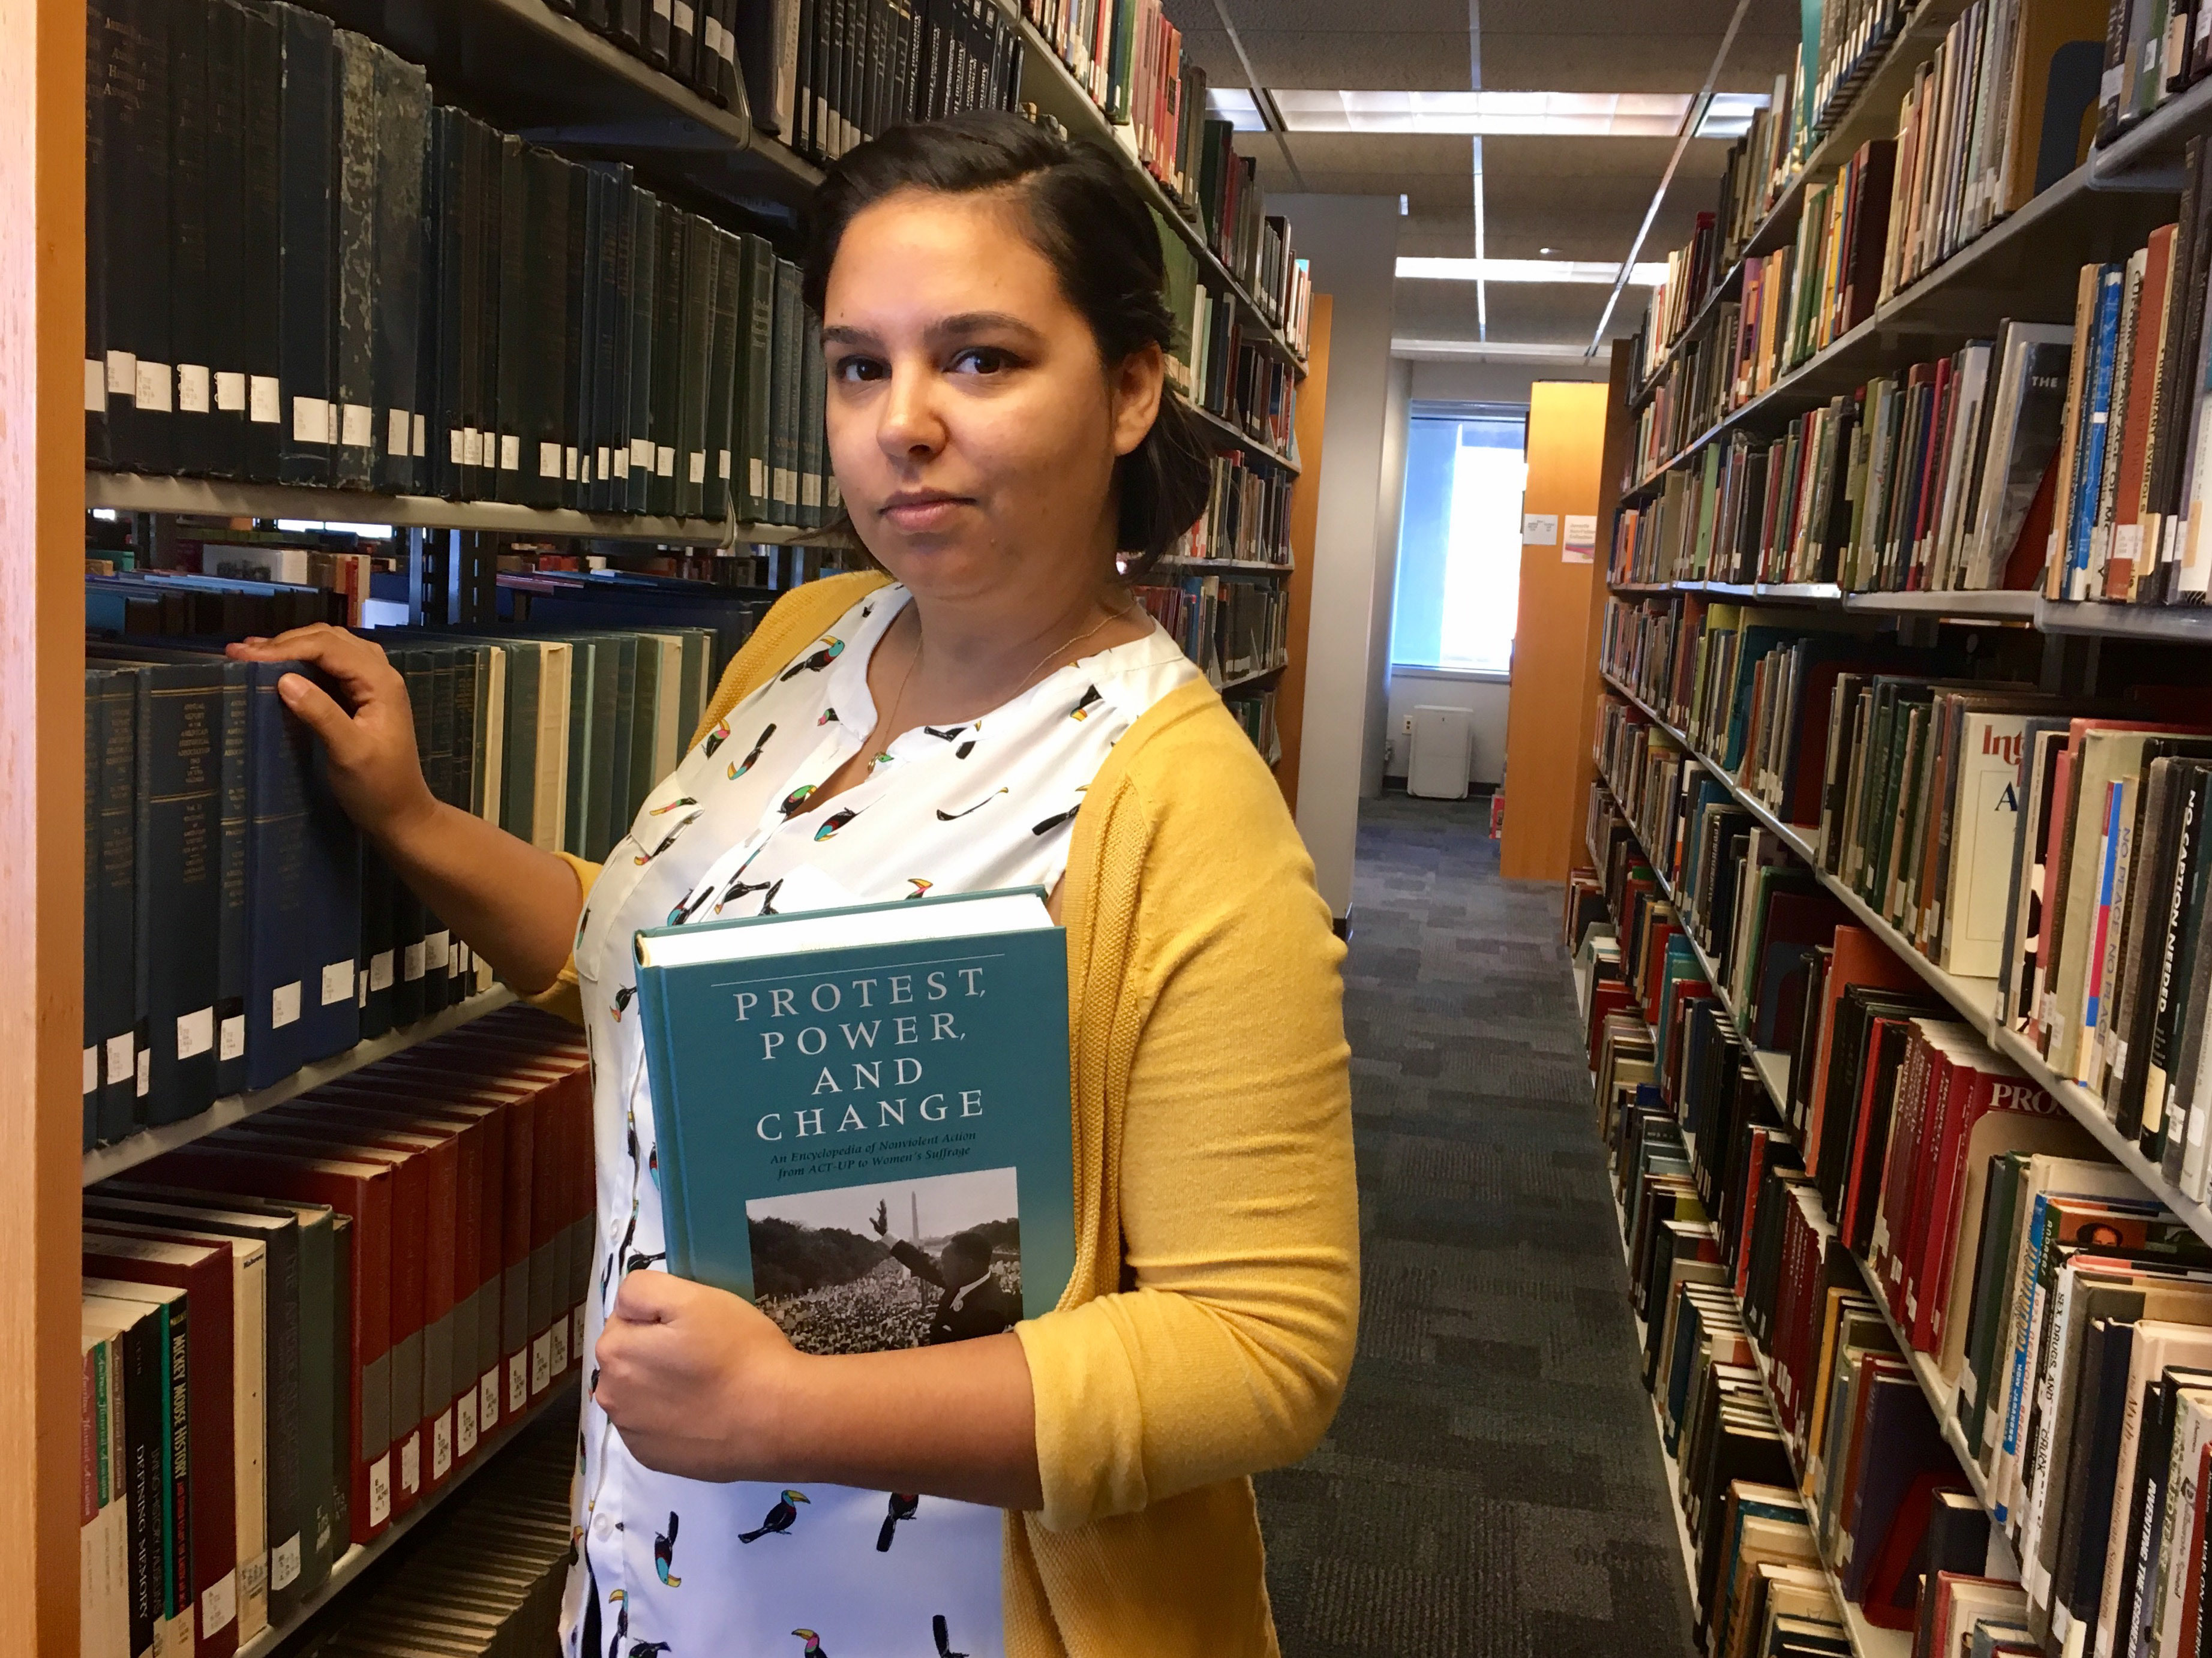 Alexandra Flores in the Nelson Poynter Memorial Library on the University of South Florida St. Petersburg campus on July 11, 2017. (Natalie Polson/Associated Press)